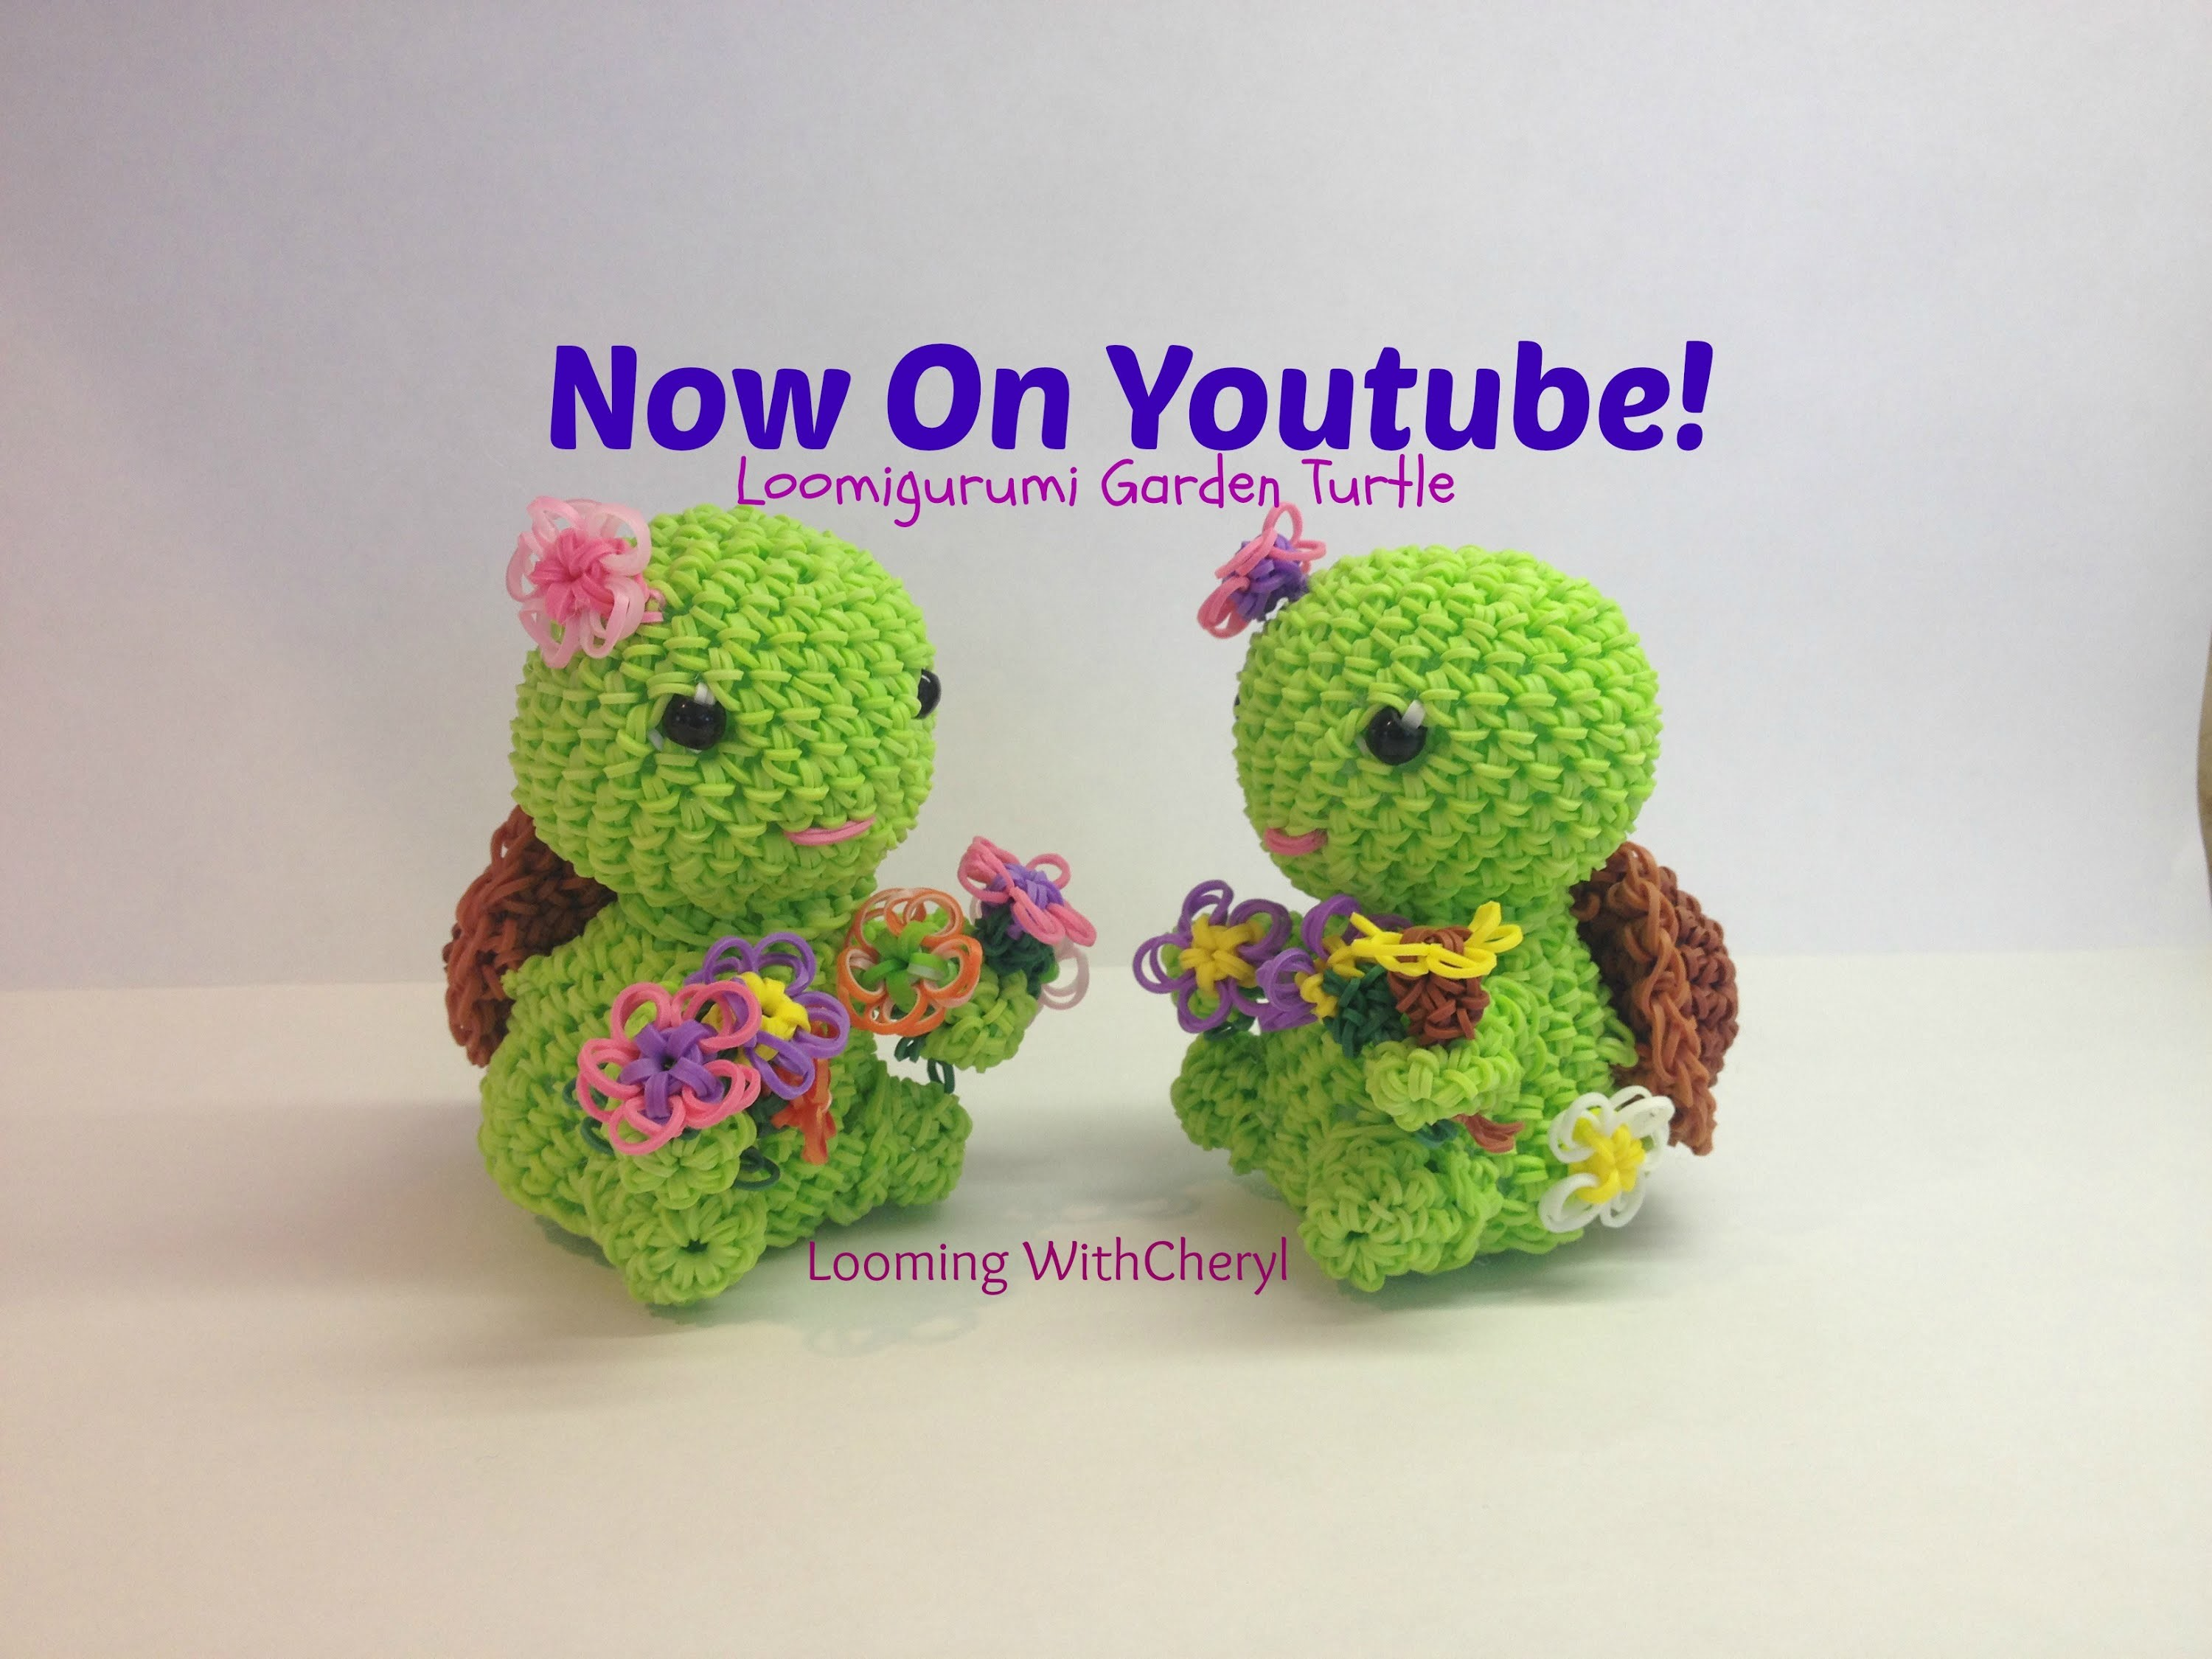 Rainbow Loom Garden Turtle - Loomigurumi - Looming WithCheryl